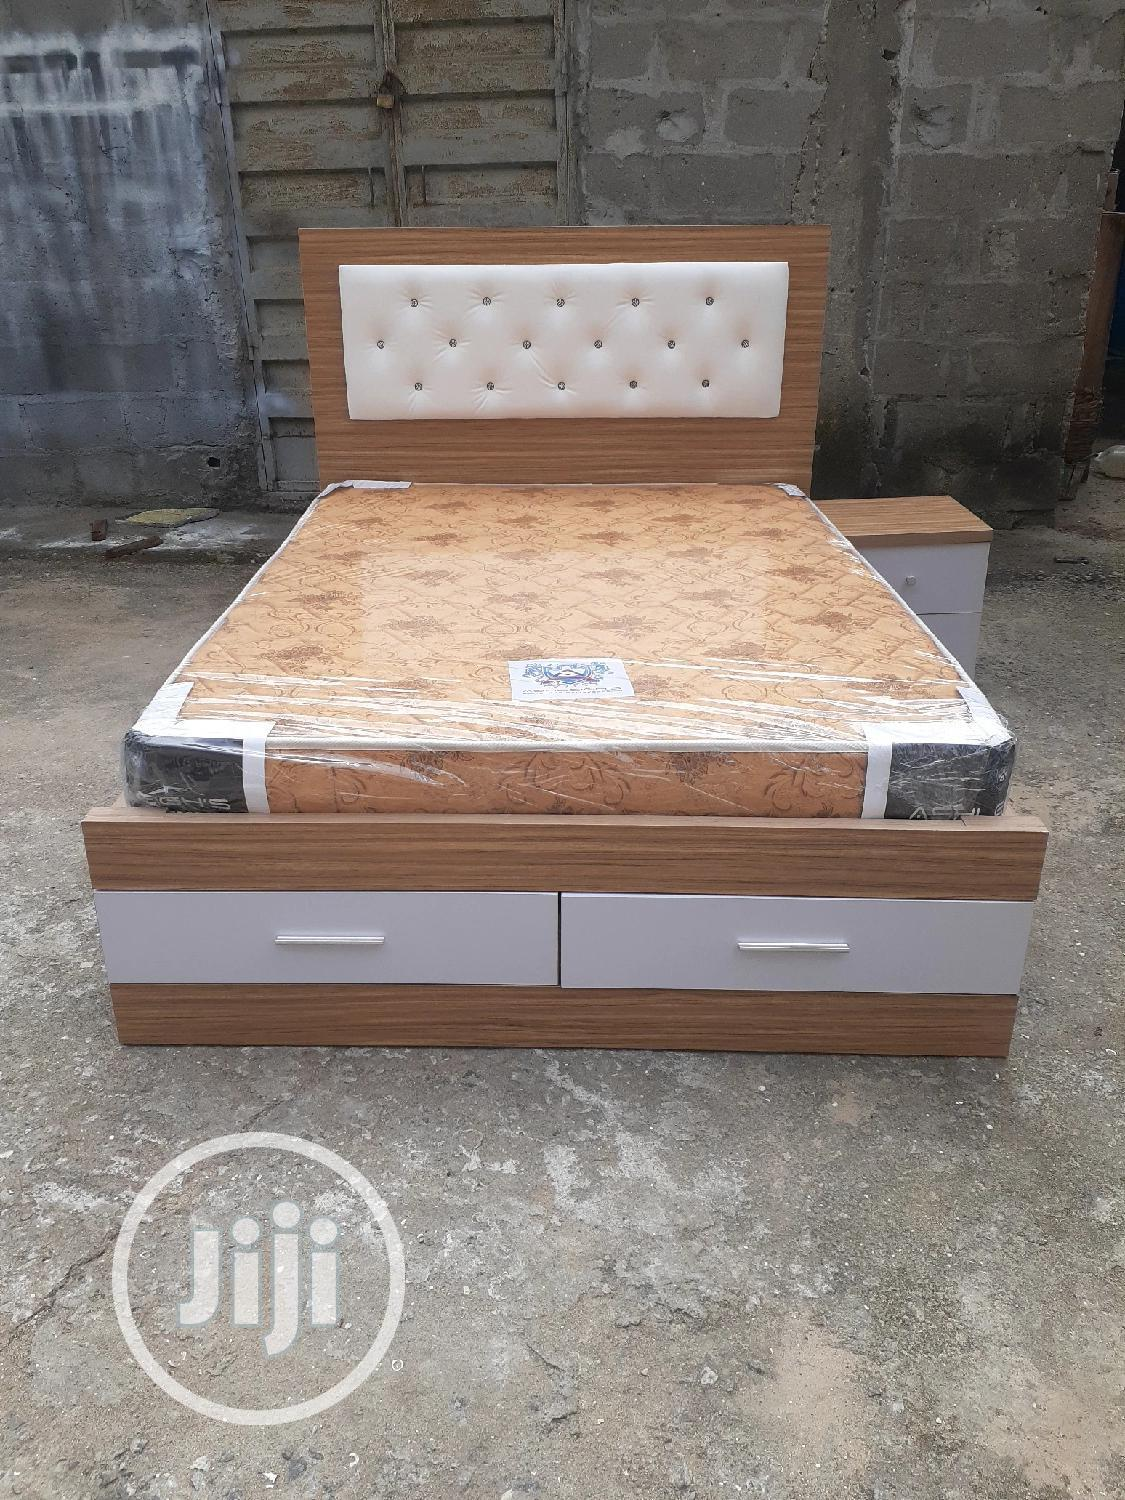 4 By 6 Bed Frame With Original Mattress